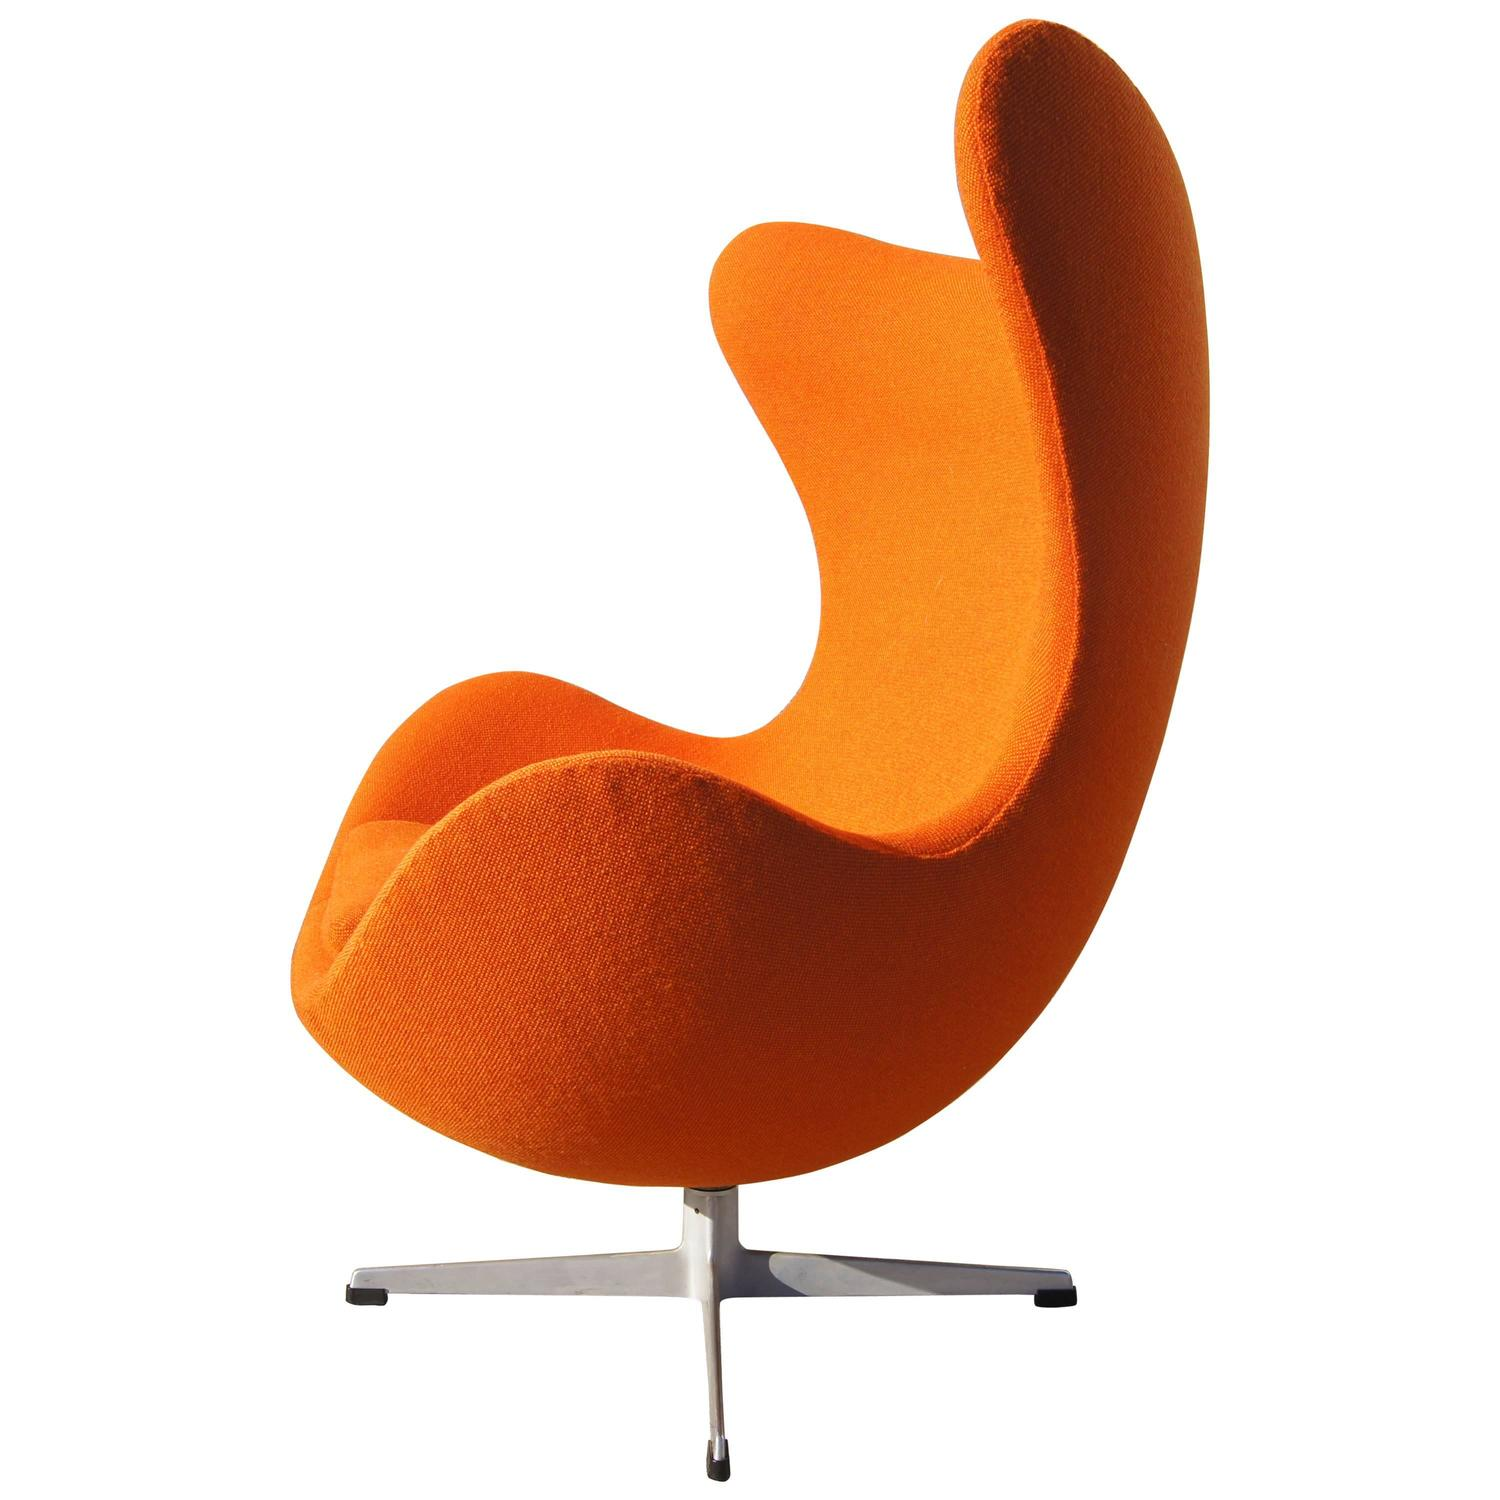 Egg Chair By Arne Jacobsen For Fritz Hansen For Sale At 1stdibs